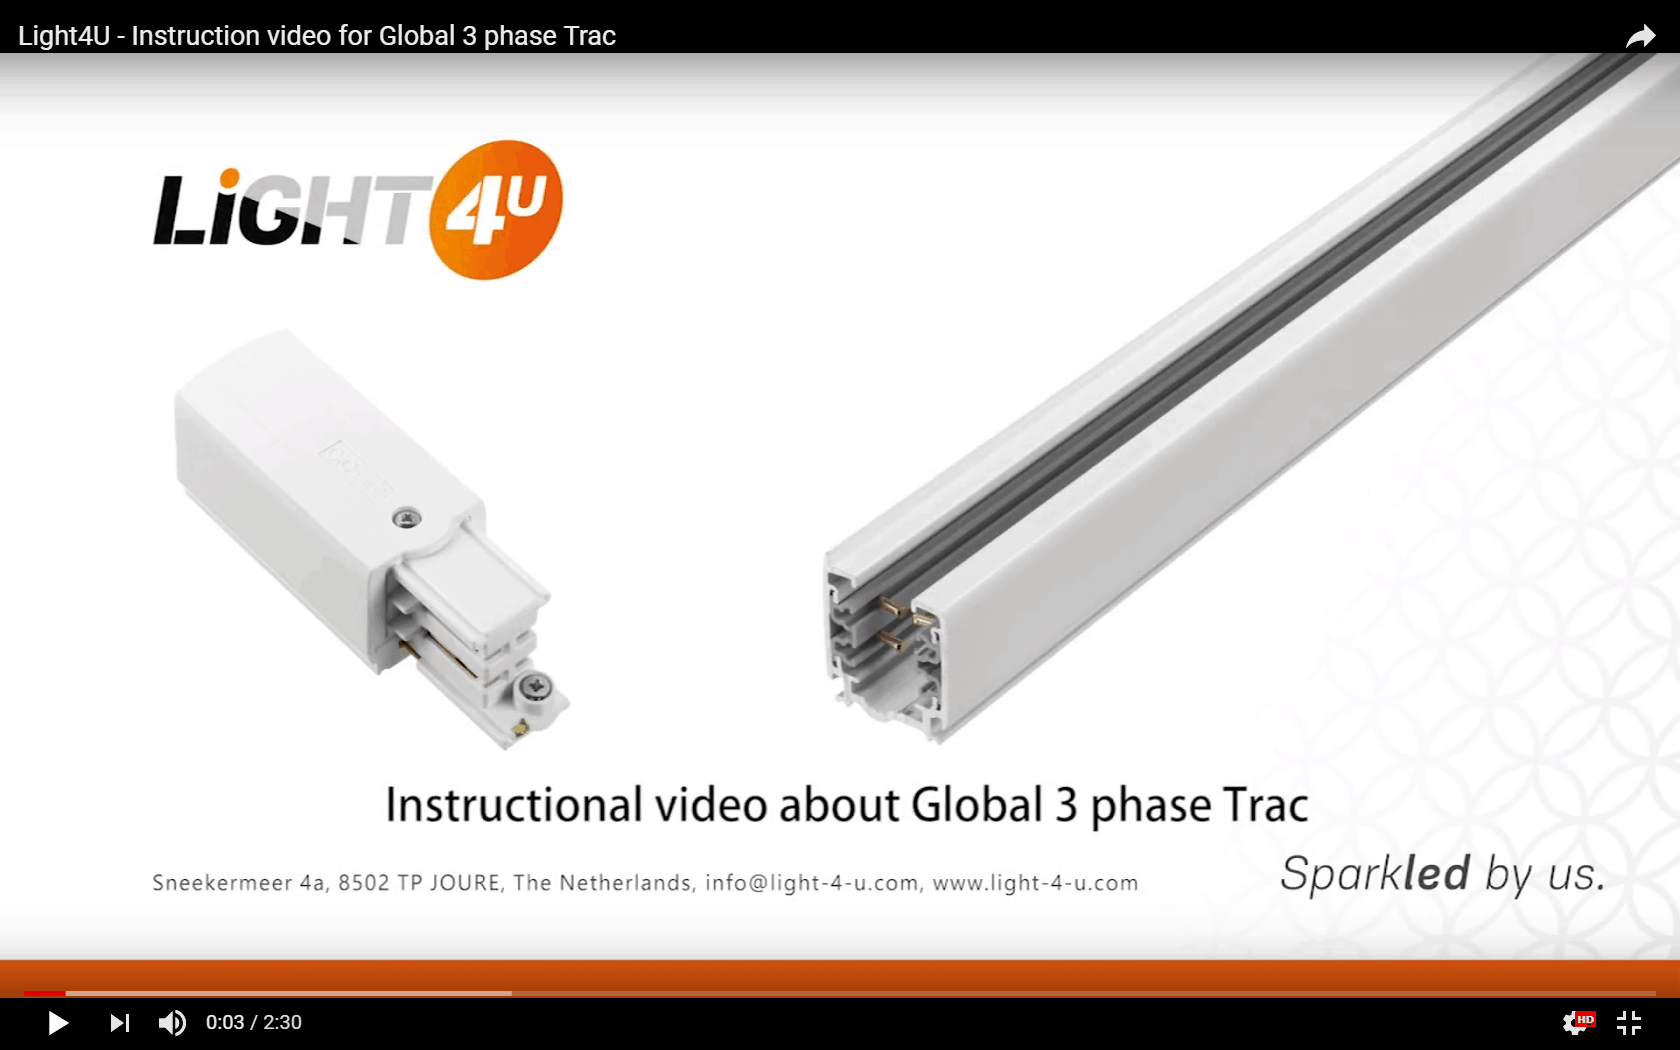 Instruction Video For Global Trac